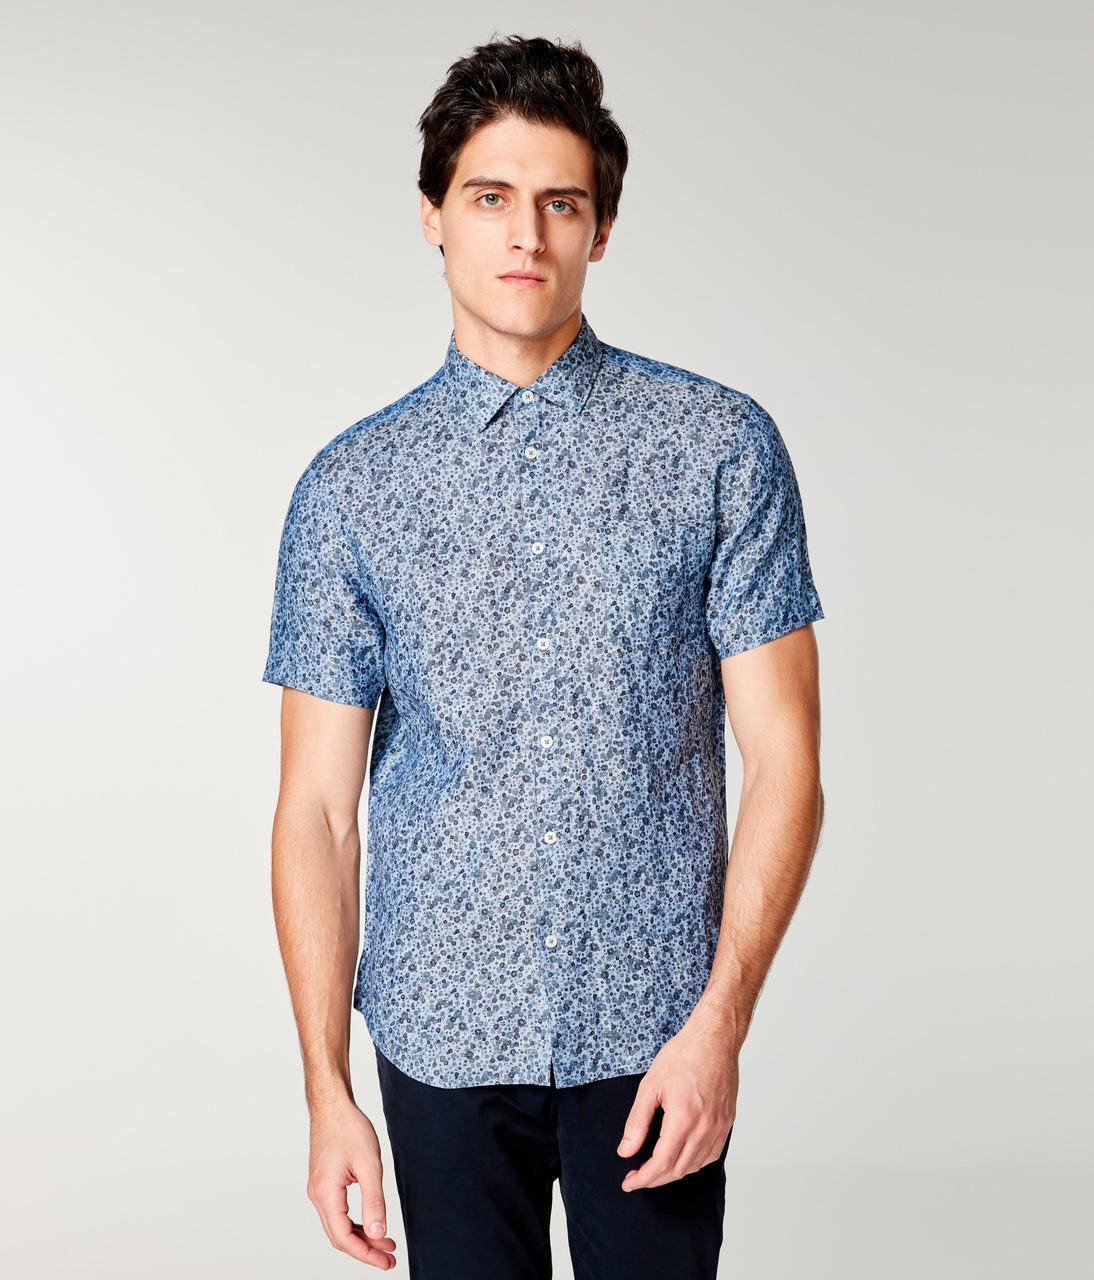 Linen On-Point Shirt - Blue Topaz Daisy Play - Good Man Brand - Linen On-Point Print Shirt Short Sleeve - Blue Topaz Daisy Play